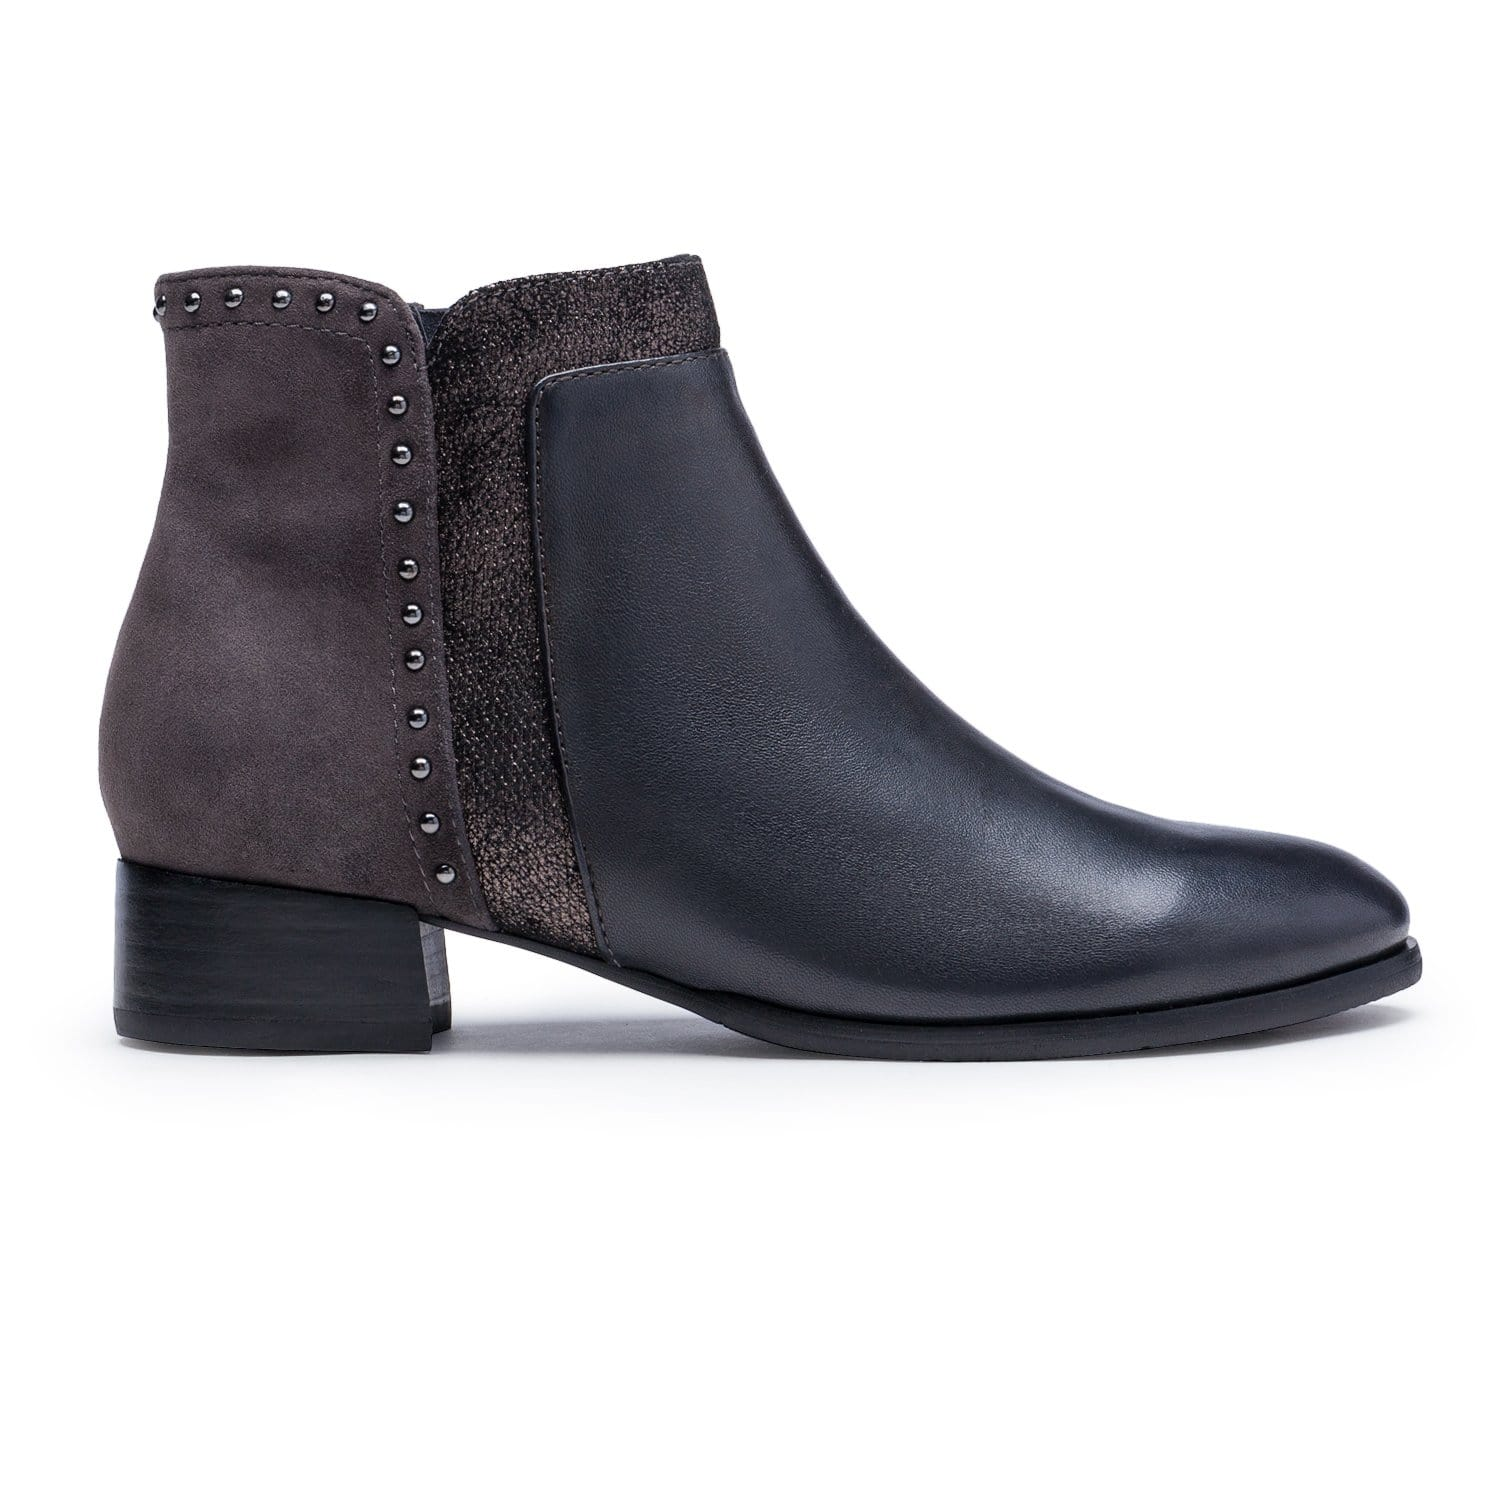 Regarde Le Ciel Cristion 06 Women's Glove Leather Fashion Bootie Shoe